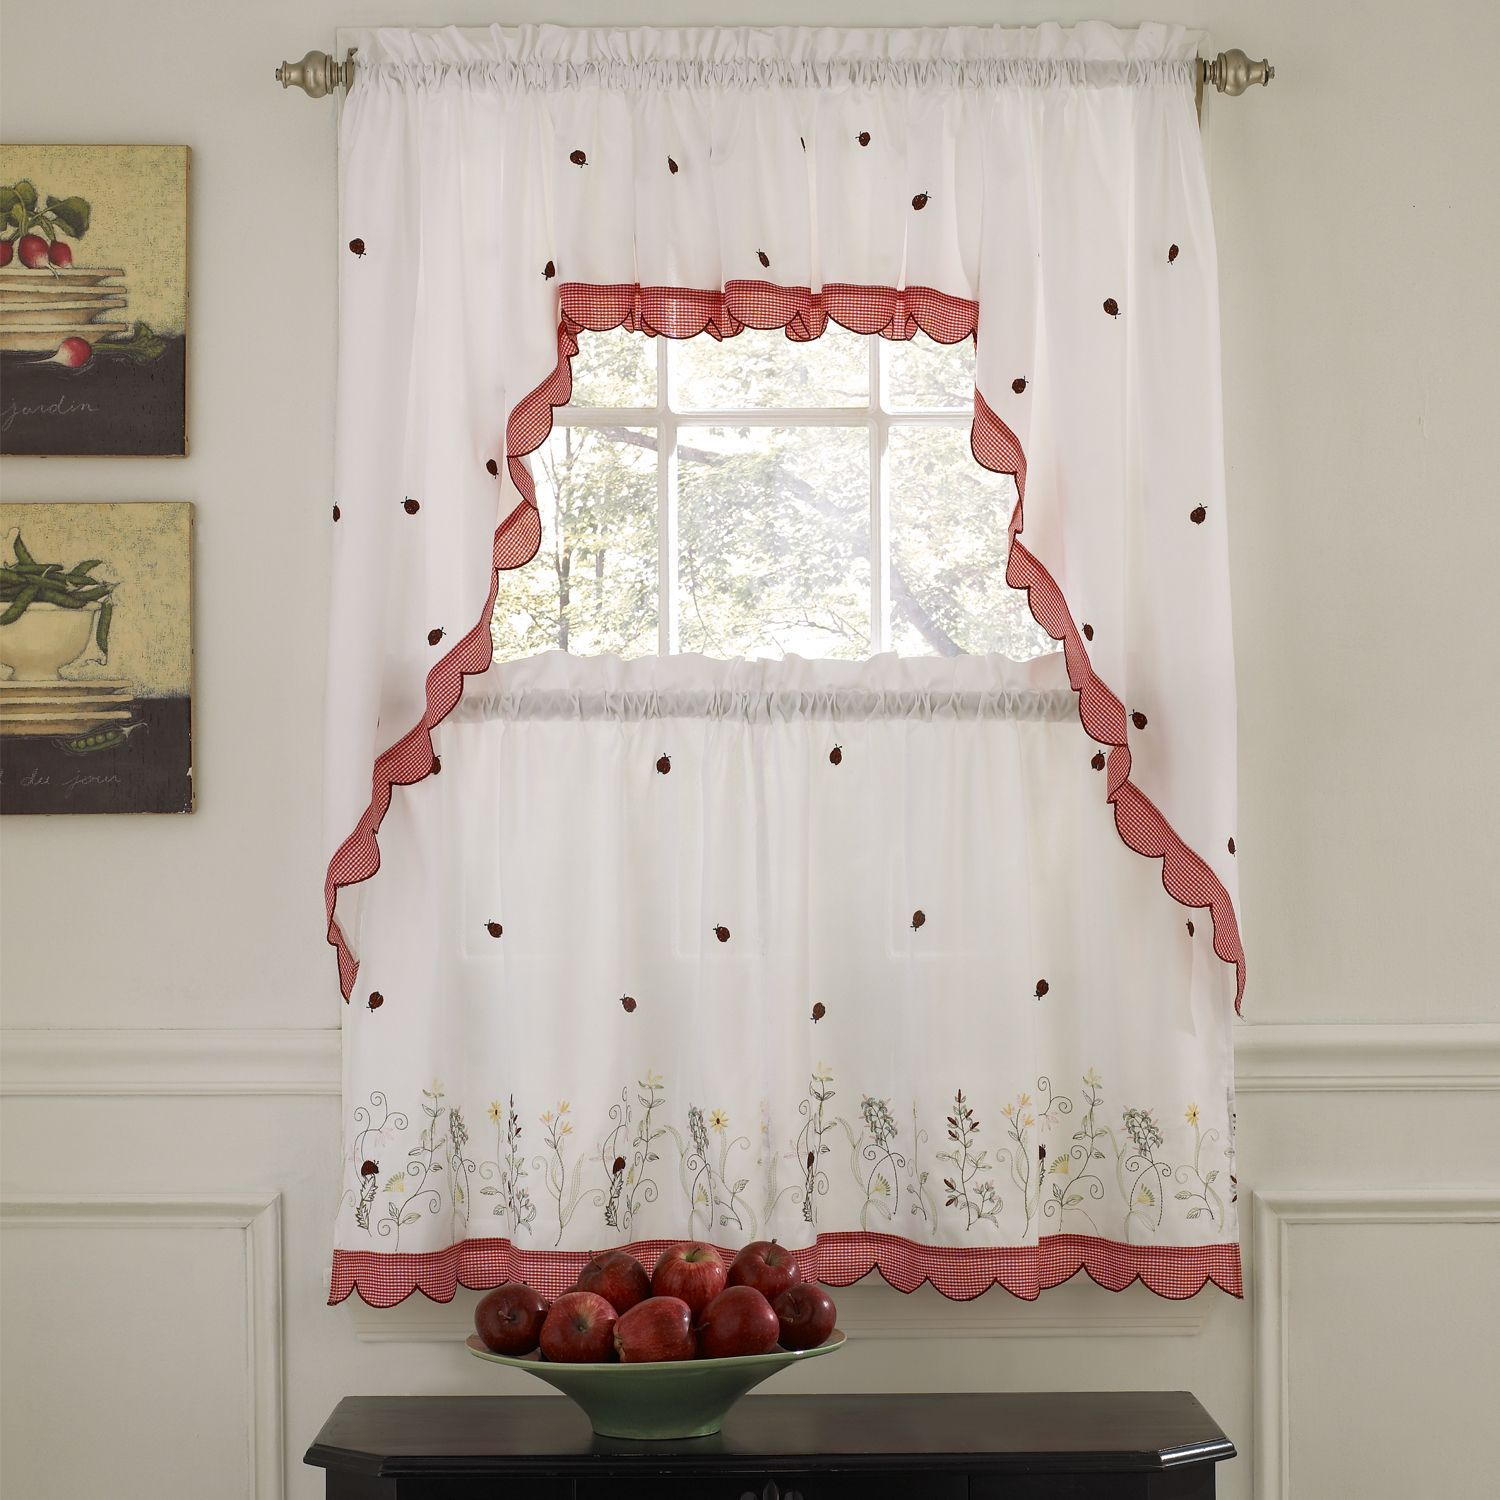 Embroidered Ladybugs Window Curtain Pieces Country Kitchen